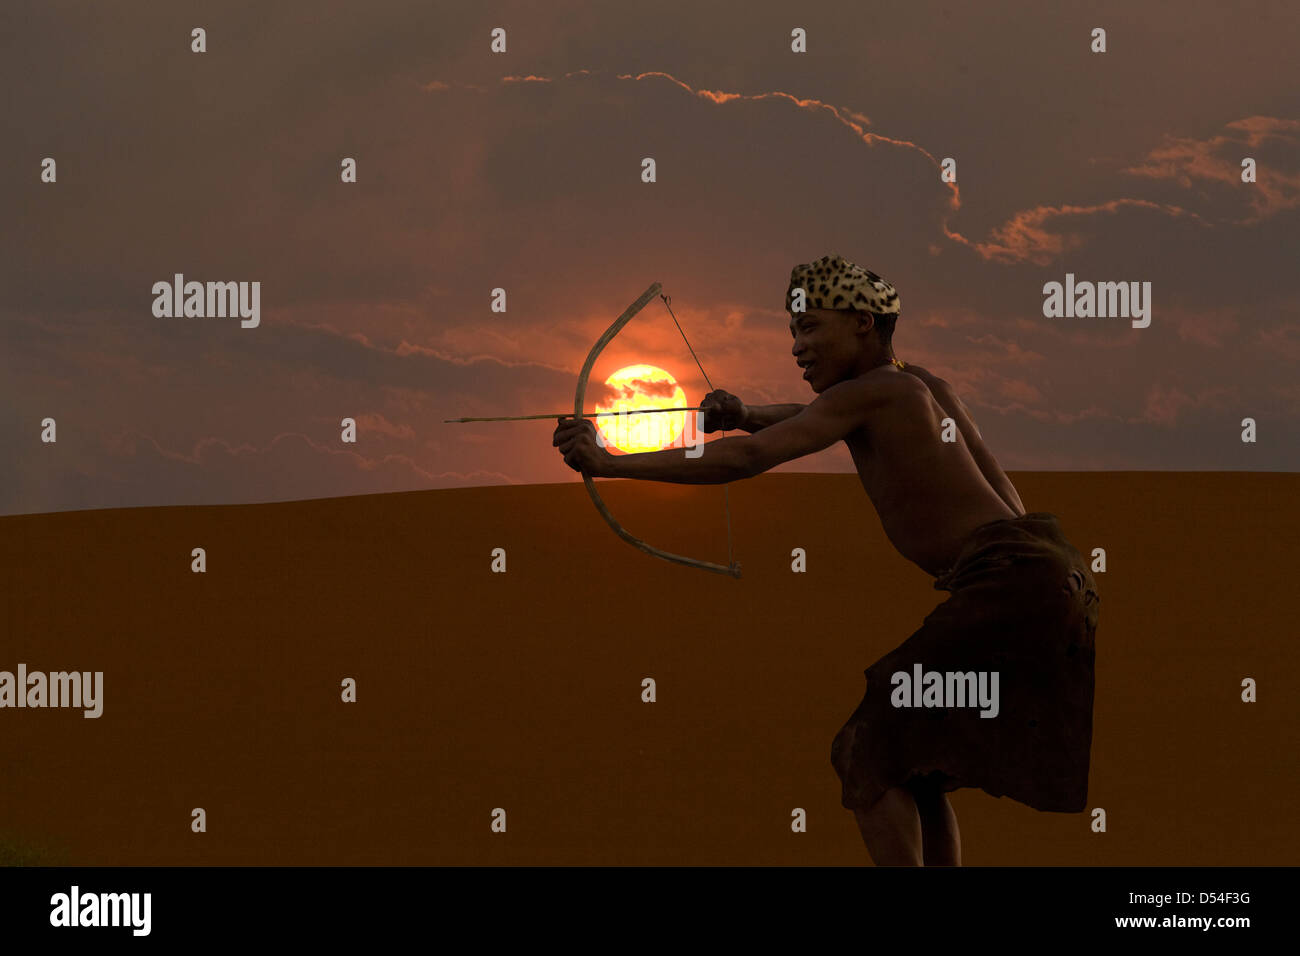 Bushman archer in Namibia silhouetted against sunset - Stock Image